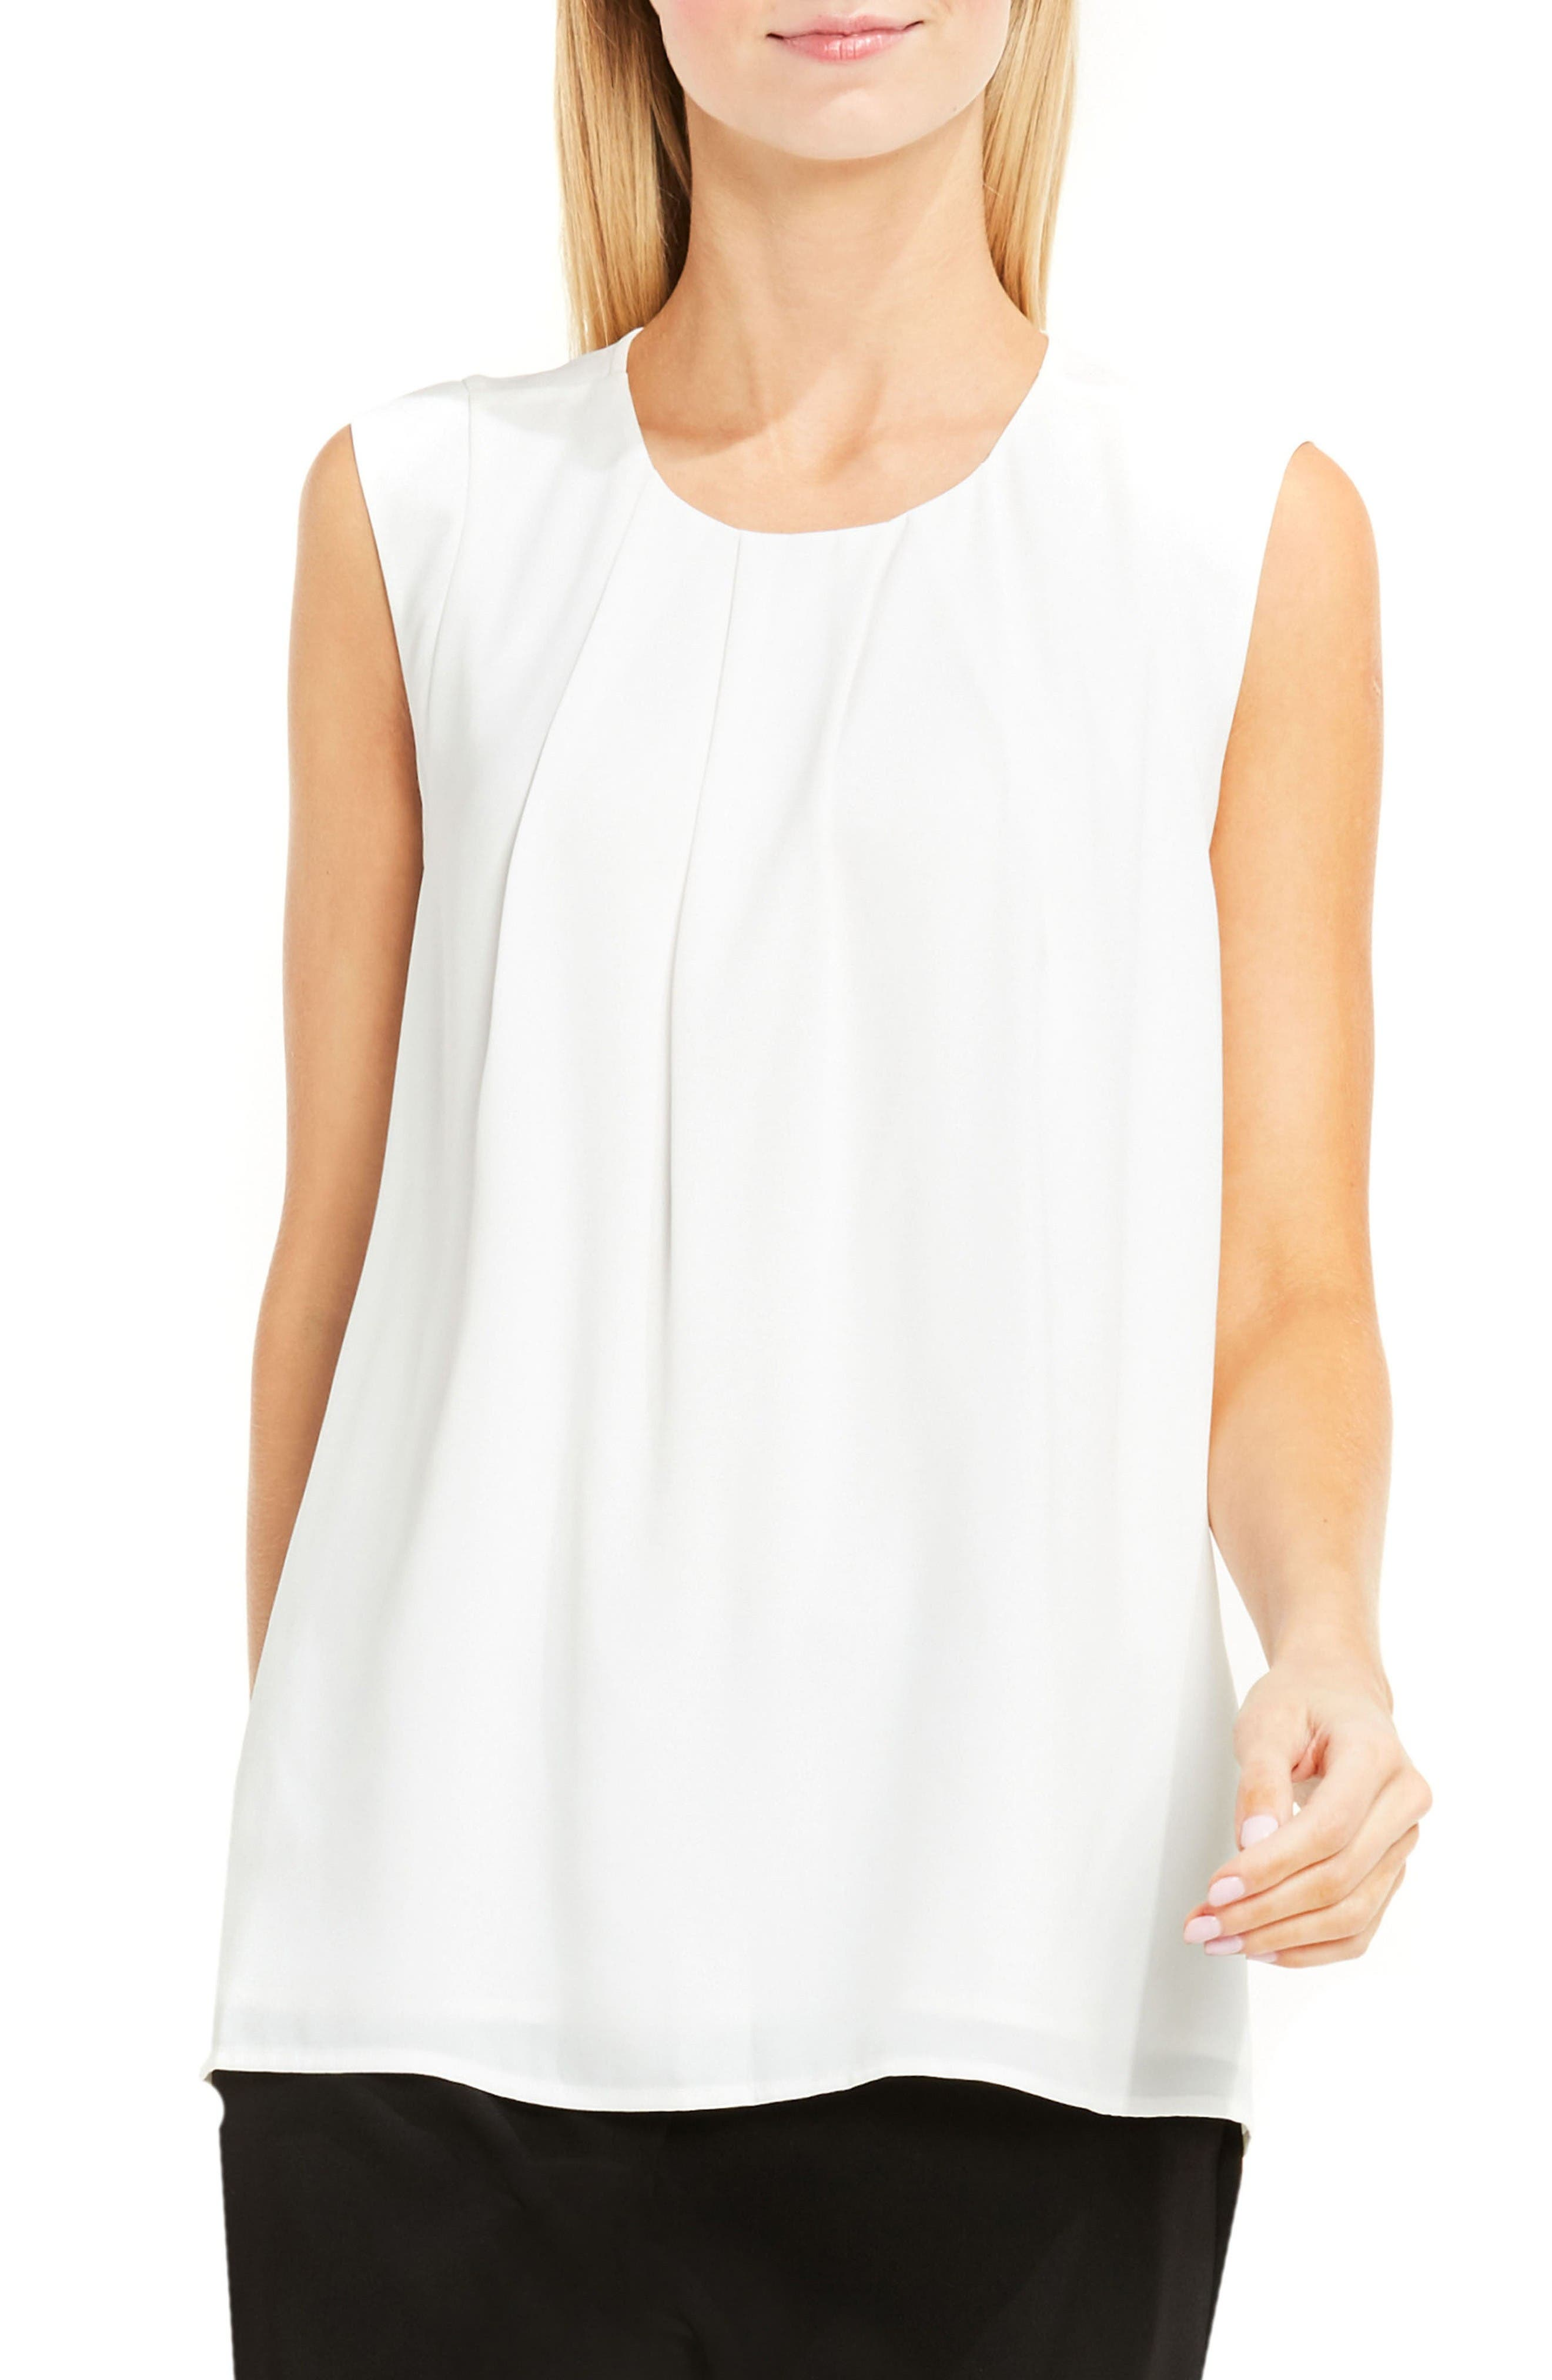 Alternate Image 1 Selected - Vince Camuto Pleat Neck Blouse (Regular & Petite)